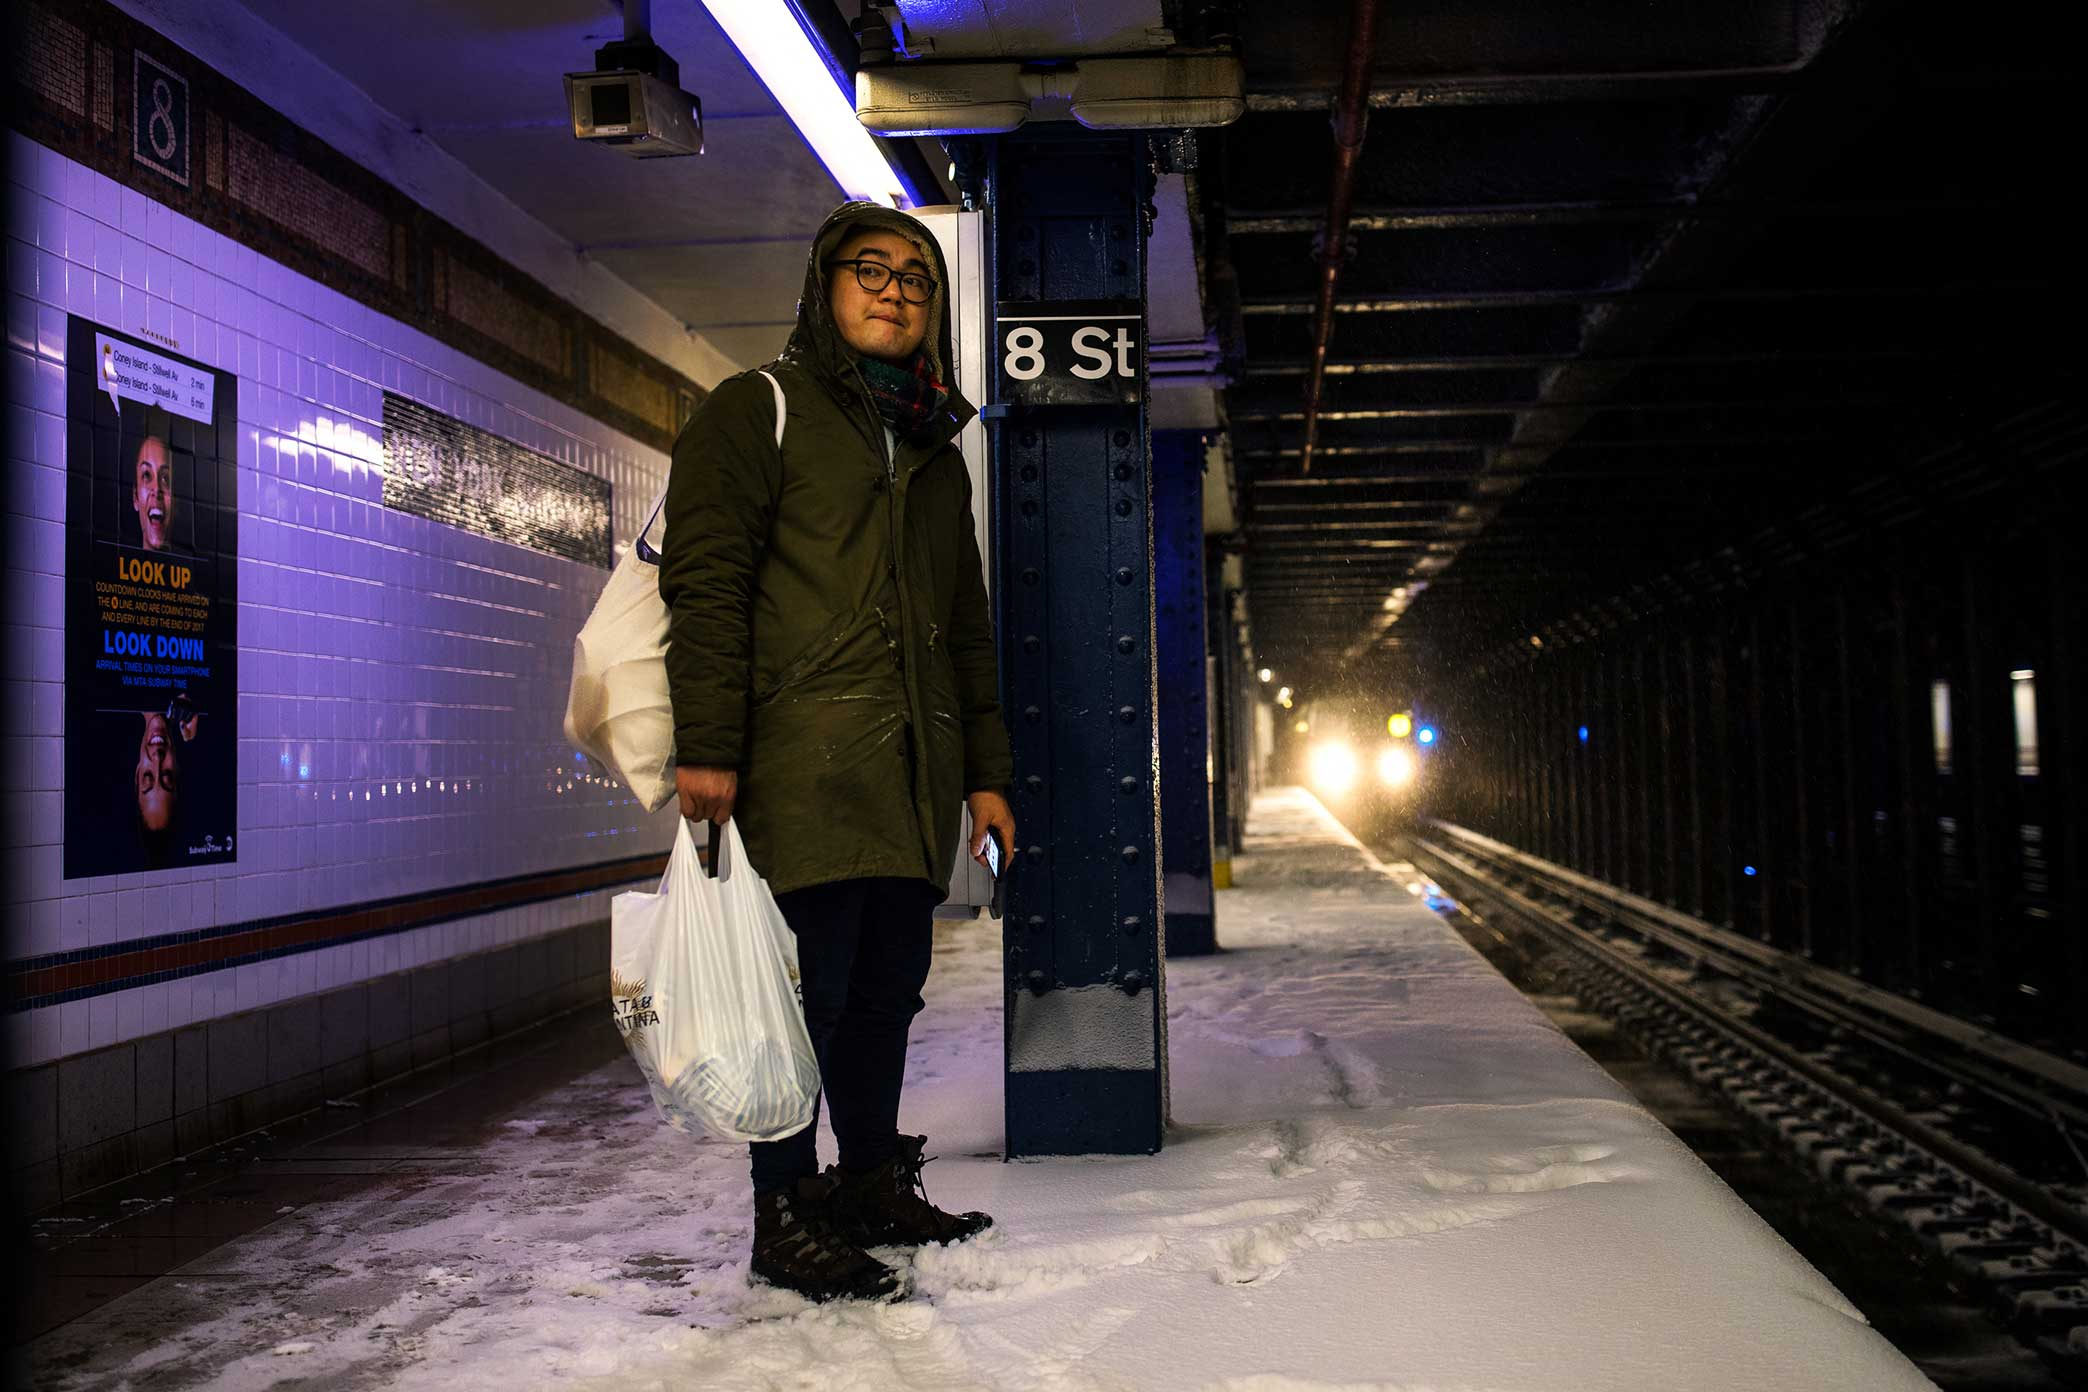 NYC Subway. NYC Snow Storm. Manhattan, NY. 2018